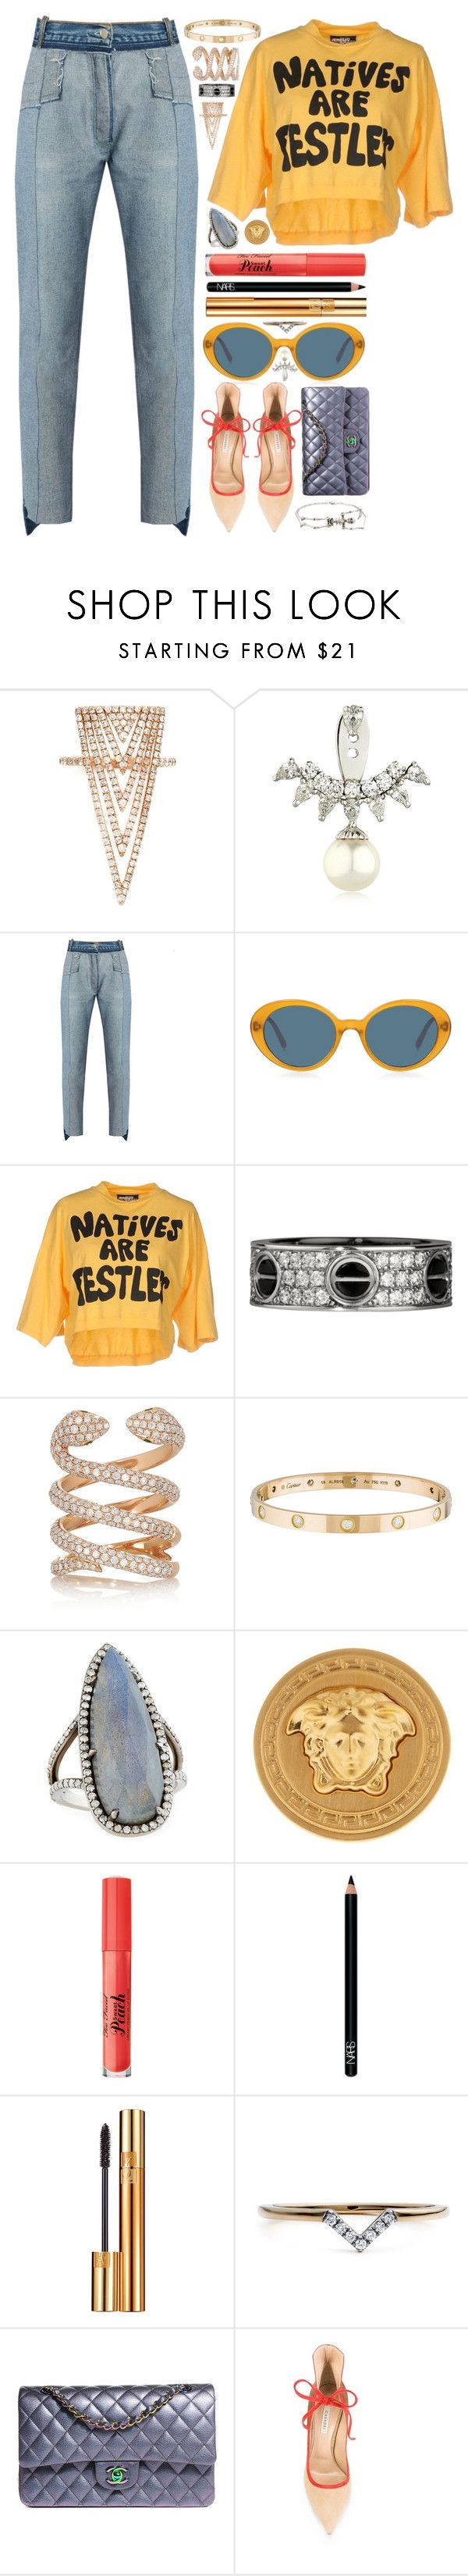 """""""not just the natives"""" by iriskatarina ❤ liked on Polyvore featuring Lauren Craft, Yvonne Léon, Vetements, Oliver Peoples, Jeremy Scott, Anita Ko, Cartier, Sheryl Lowe, Versace and NARS Cosmetics"""